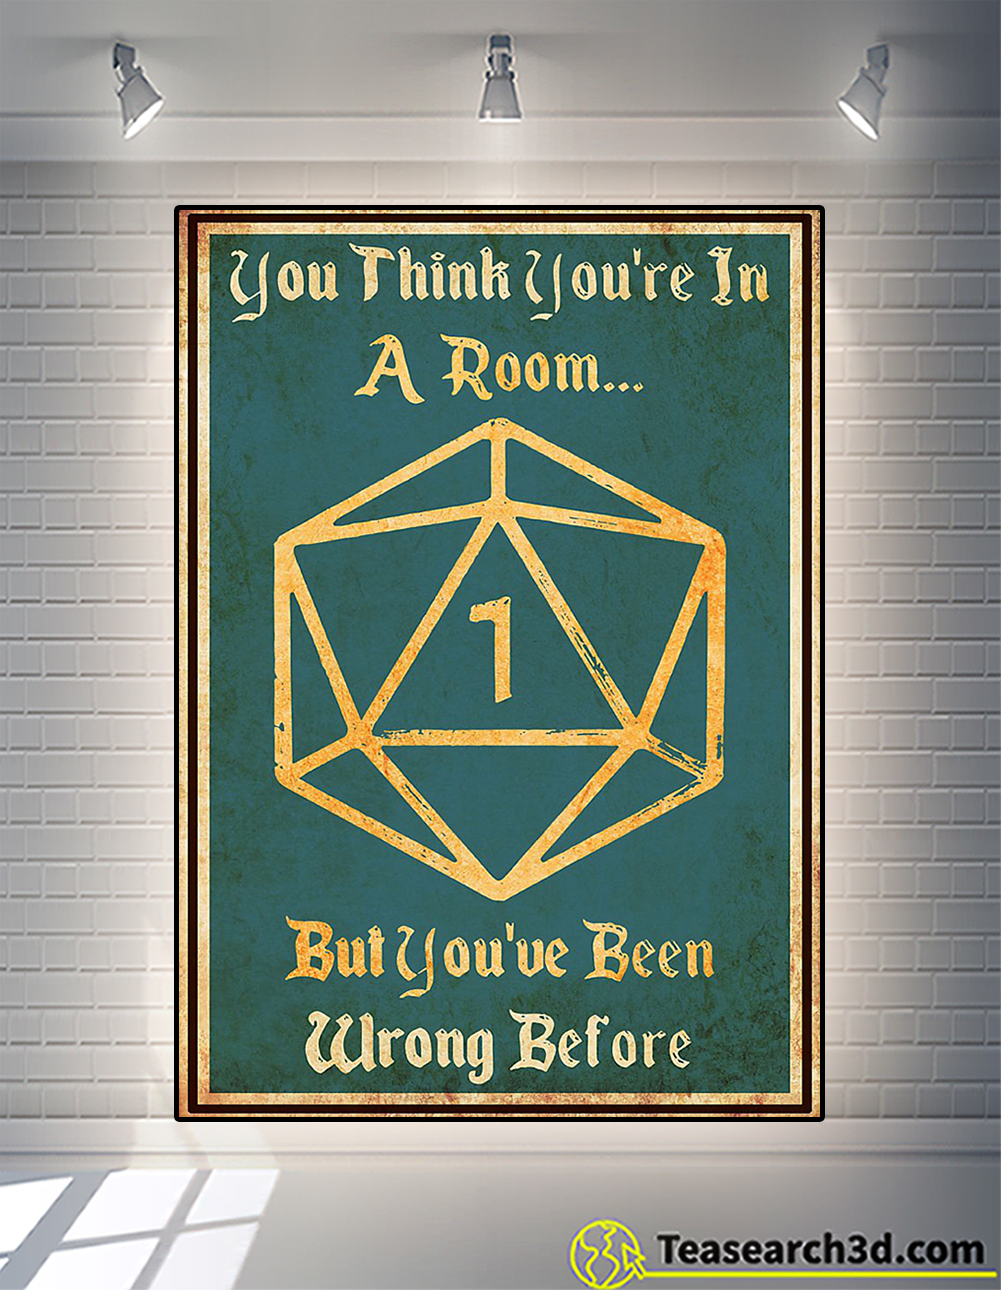 You think you are in a room poster